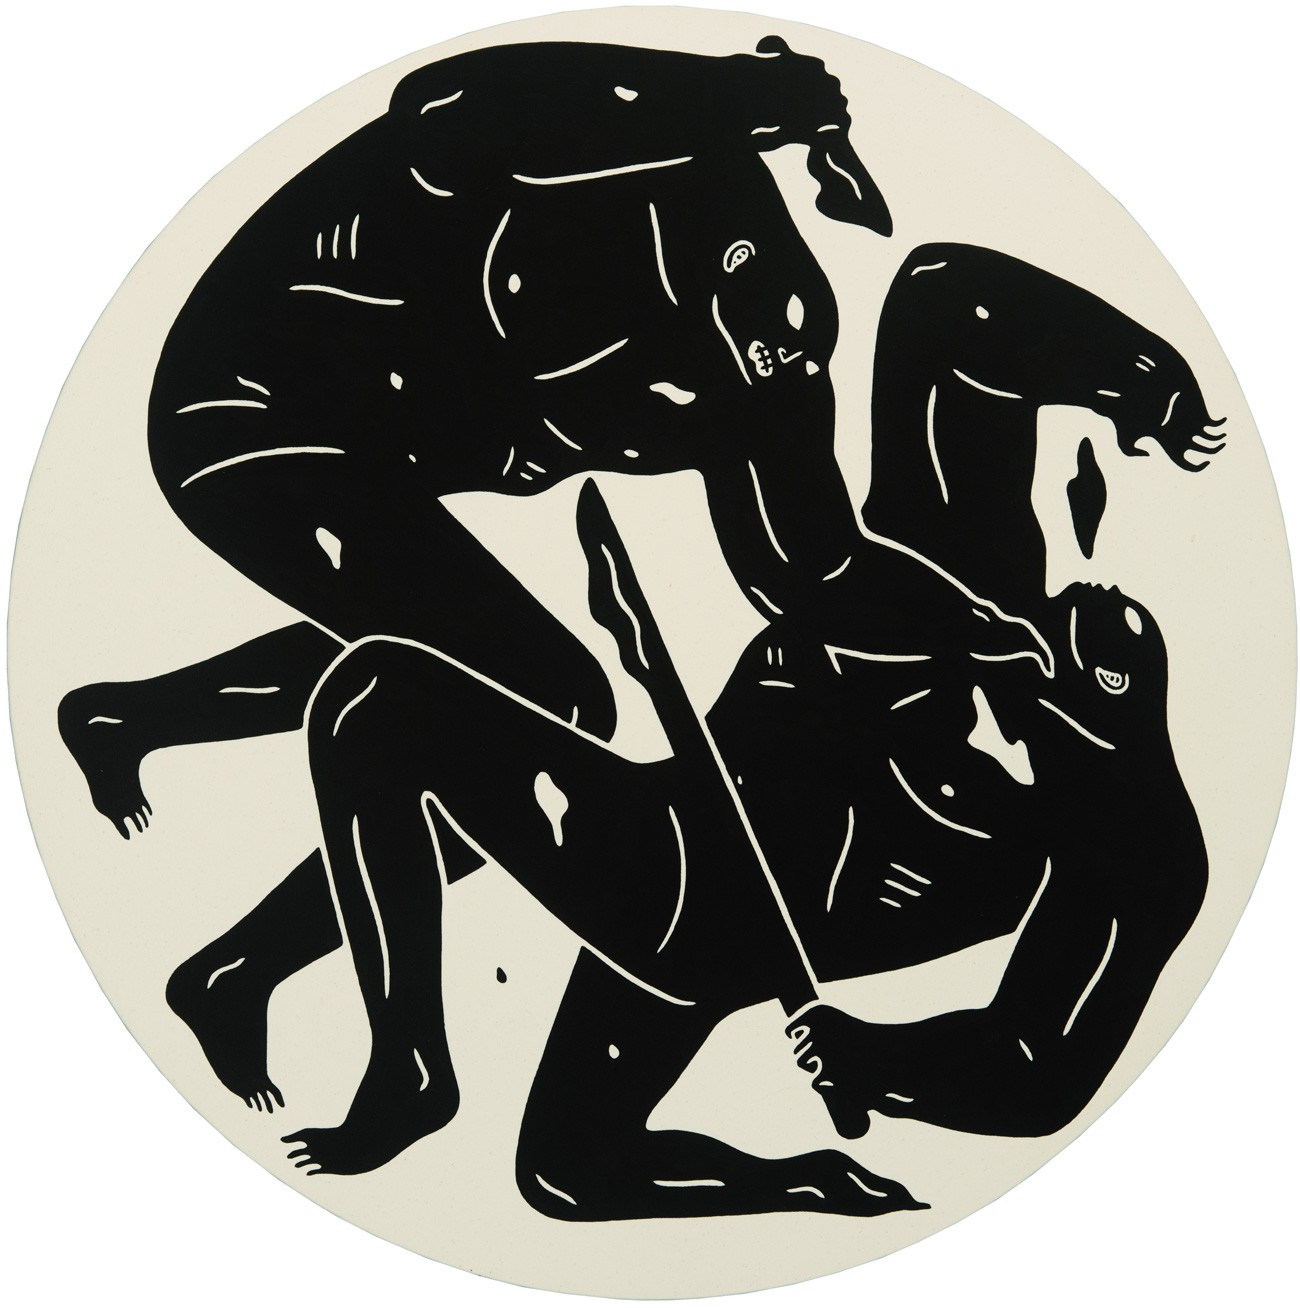 cleon-peterson-bench-talk-podcast-8.jpg